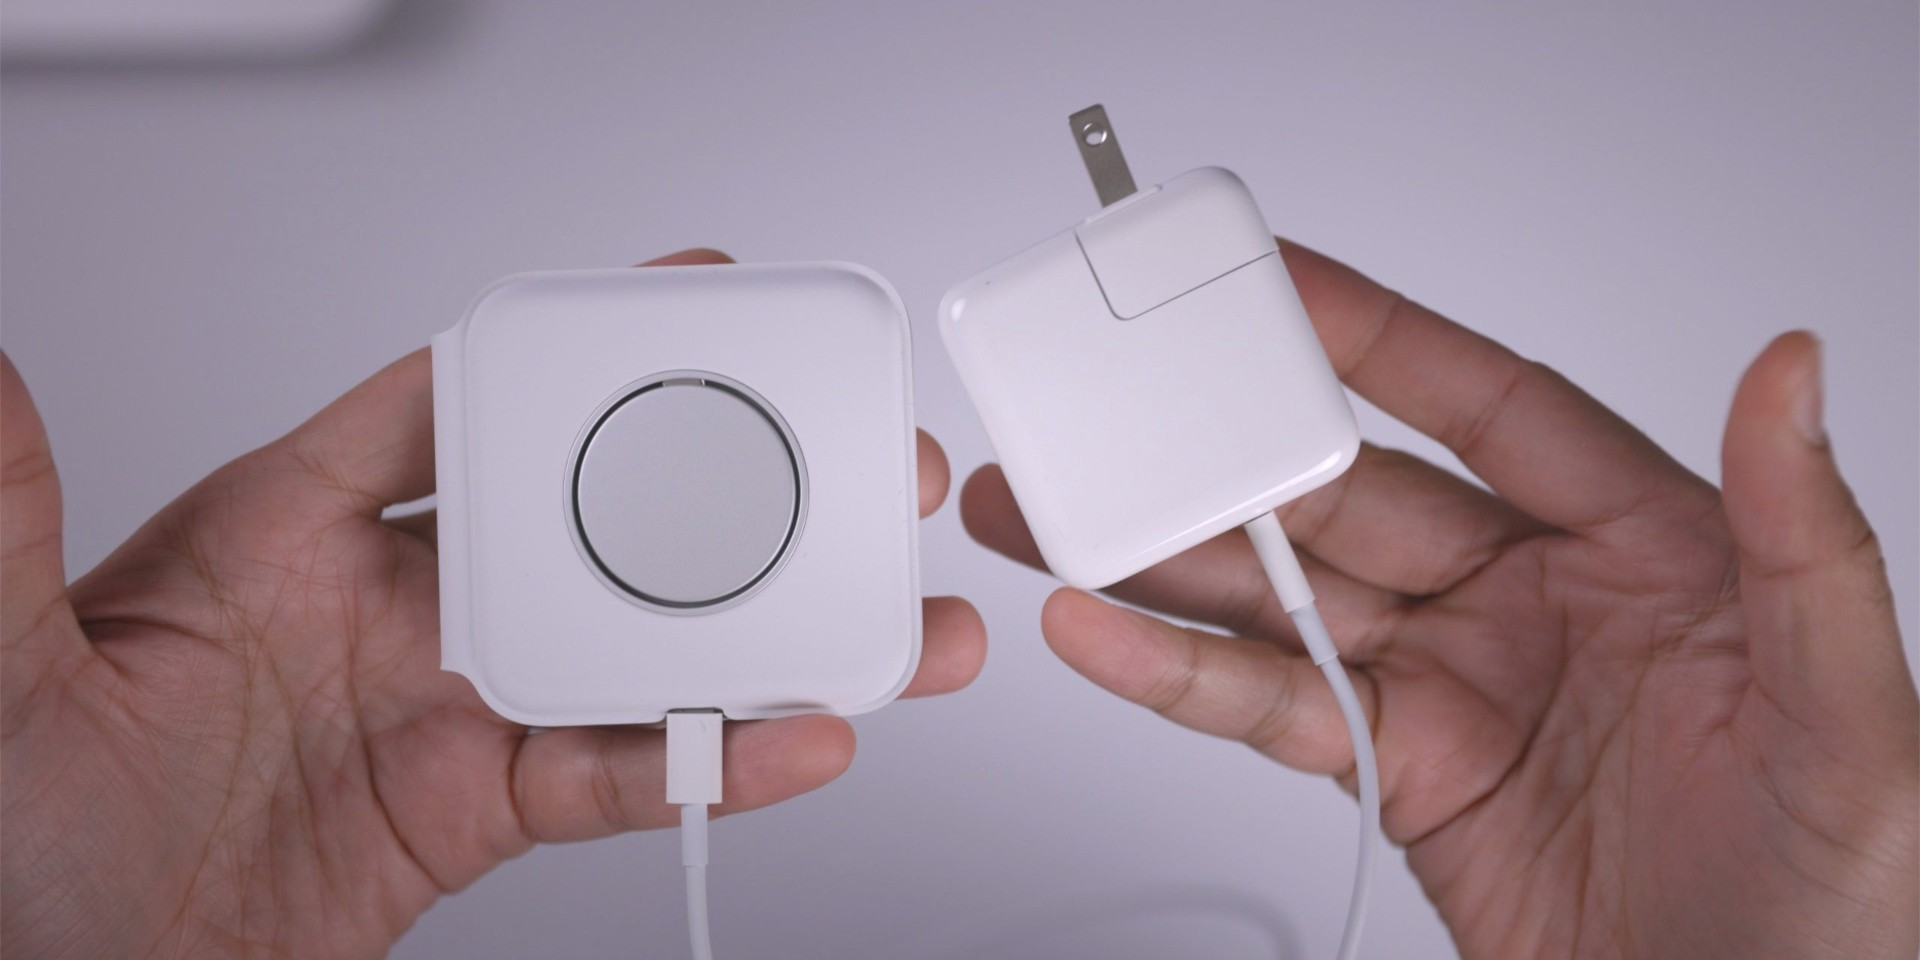 Find Out How the MagSafe Charger Works and What the Benefits Are